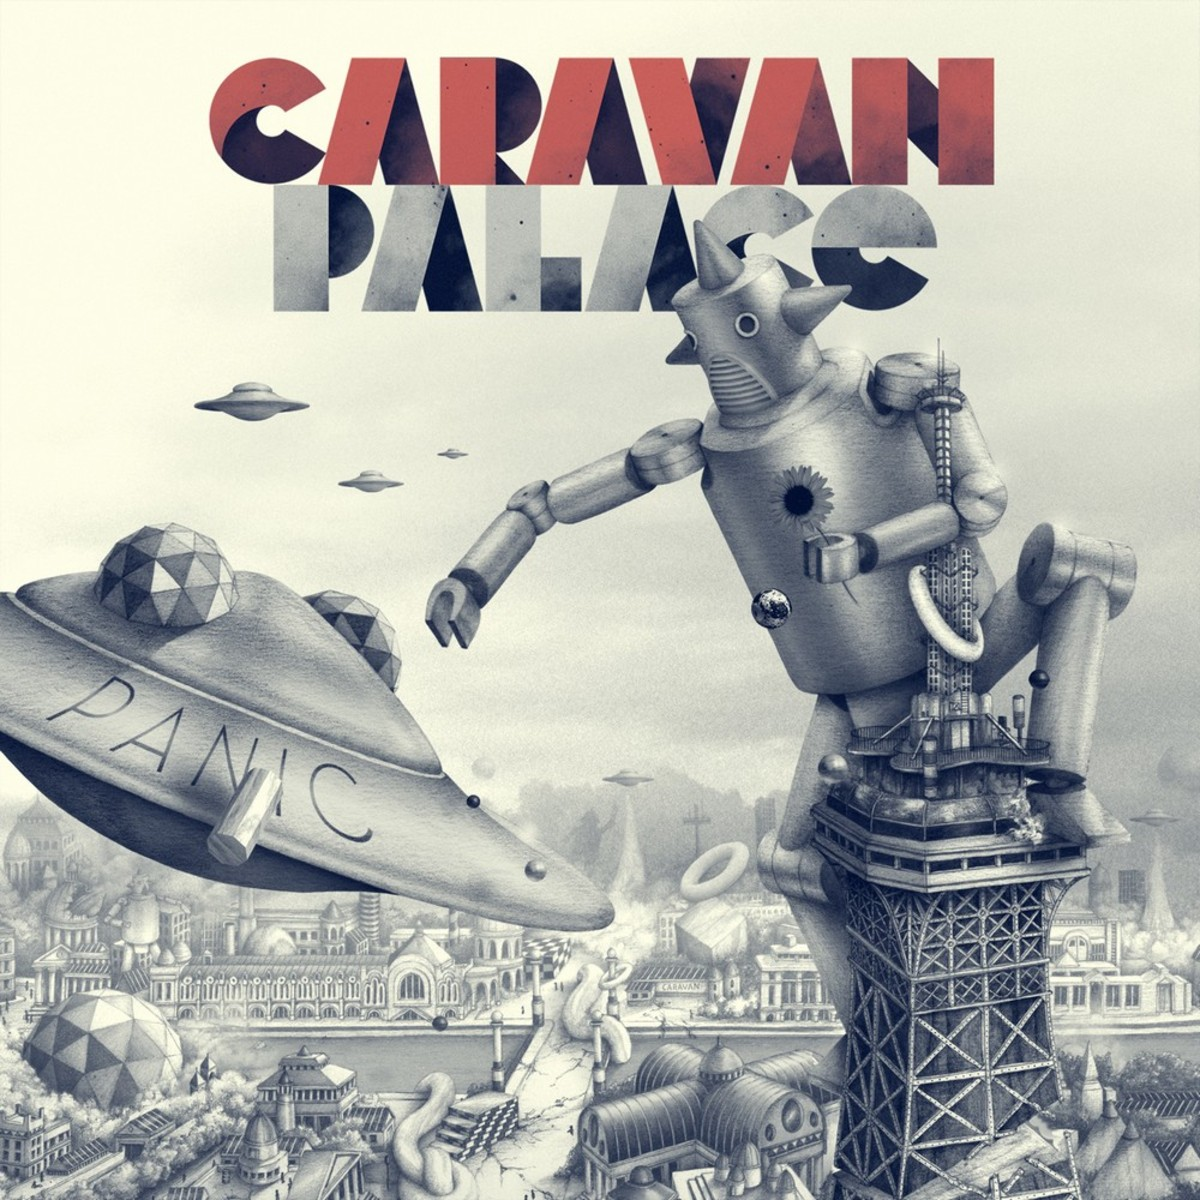 Cover art to Caravan Palace's 2012 electro swing album Panic.